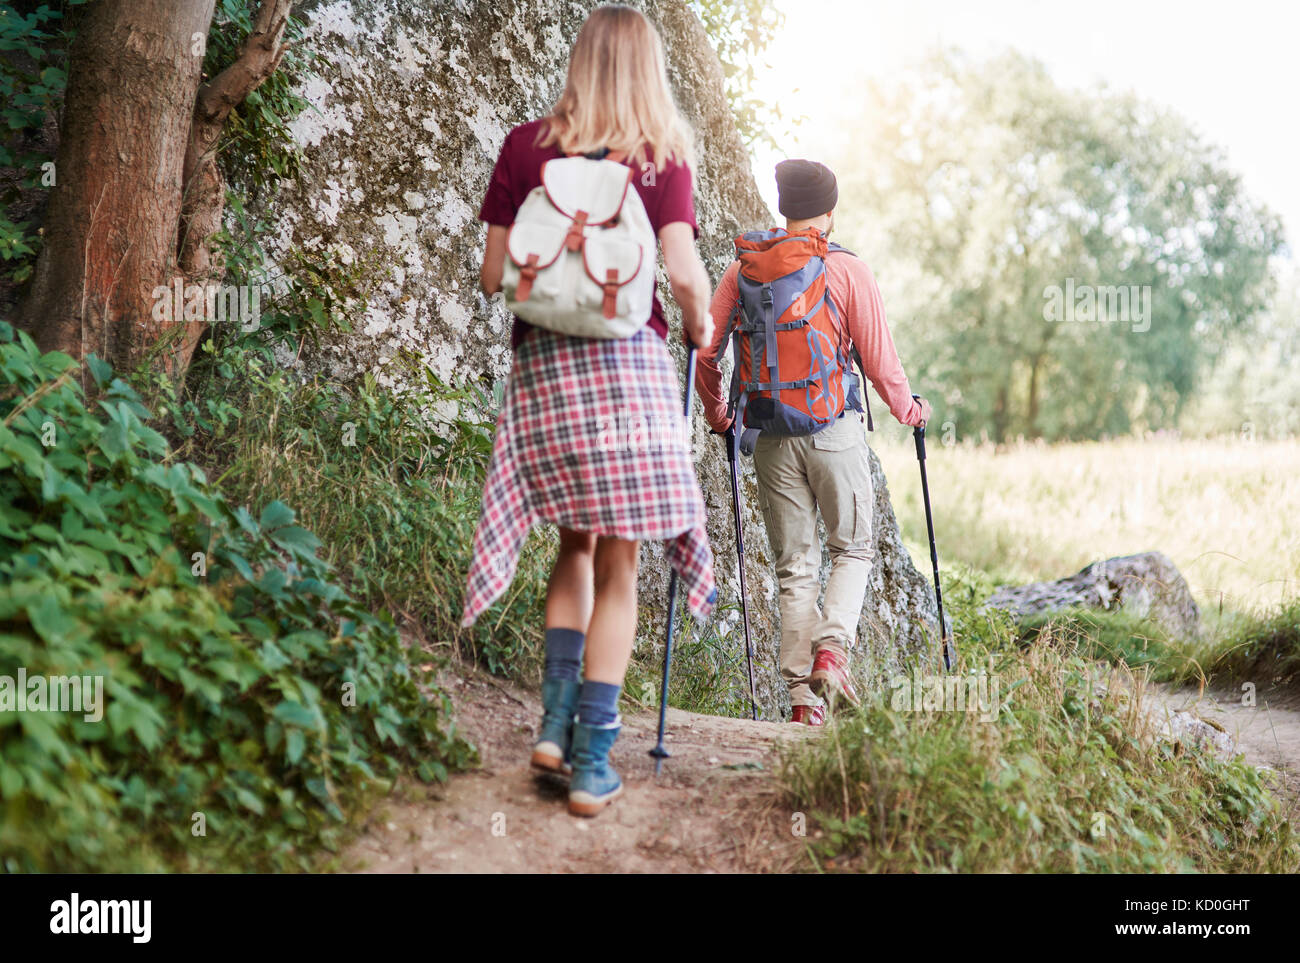 Rear view of couple with walking poles hiking in forest, Krakow, Malopolskie, Poland, Europe - Stock Image